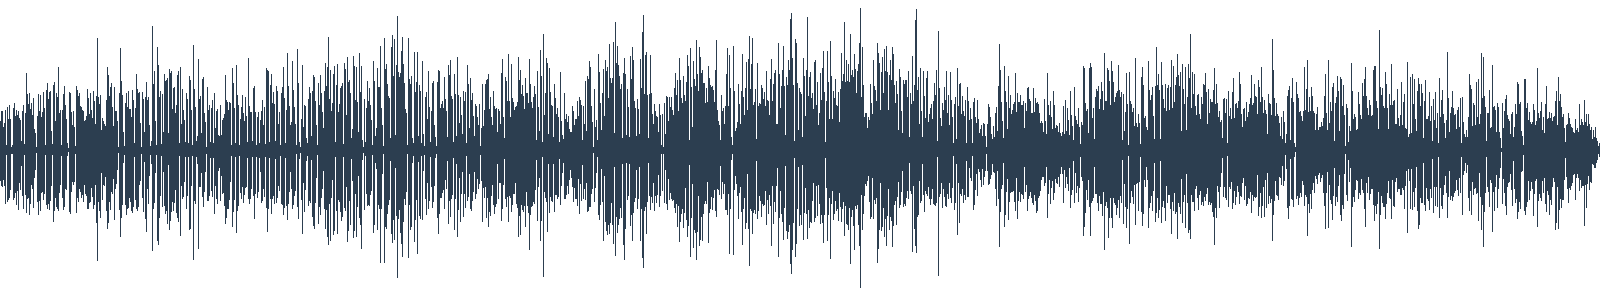 DOBRO JE MOST K NEVERIACIM waveform